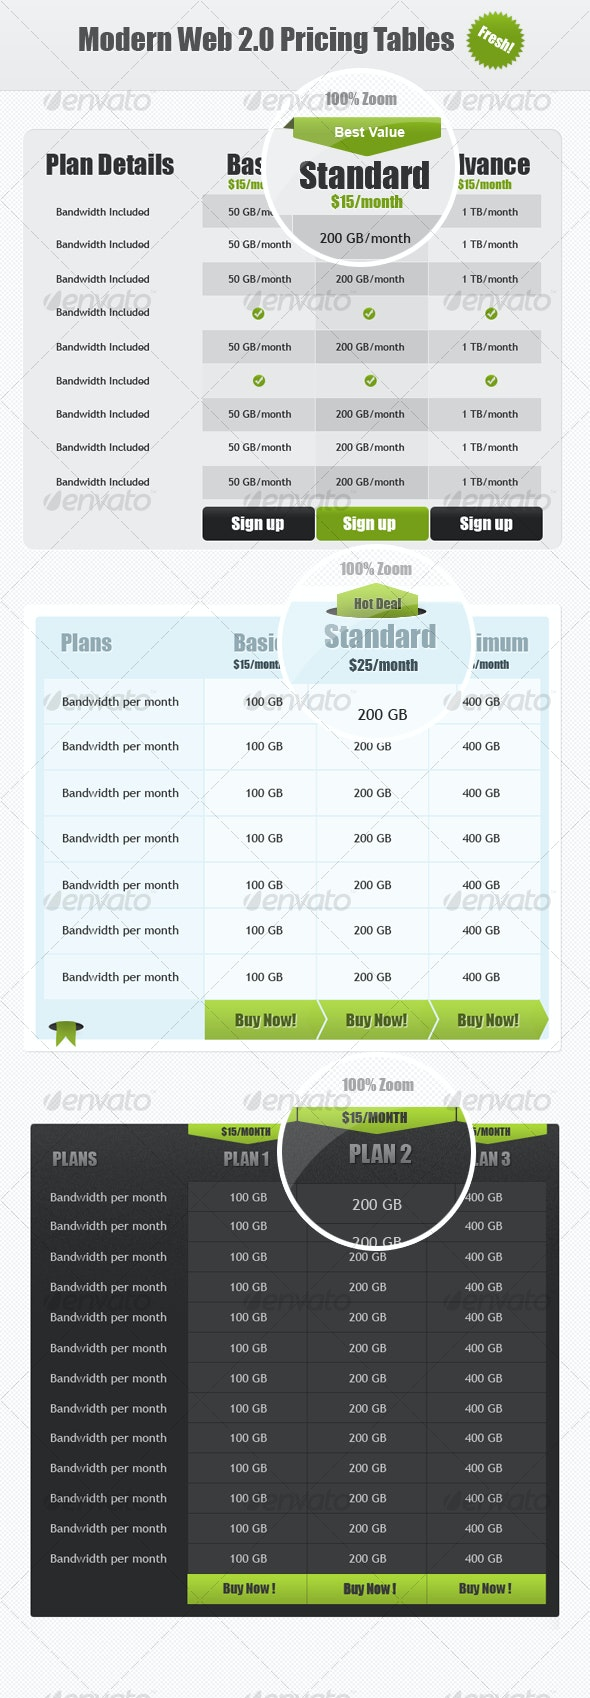 Modern Web 2.0 Pricing Tables